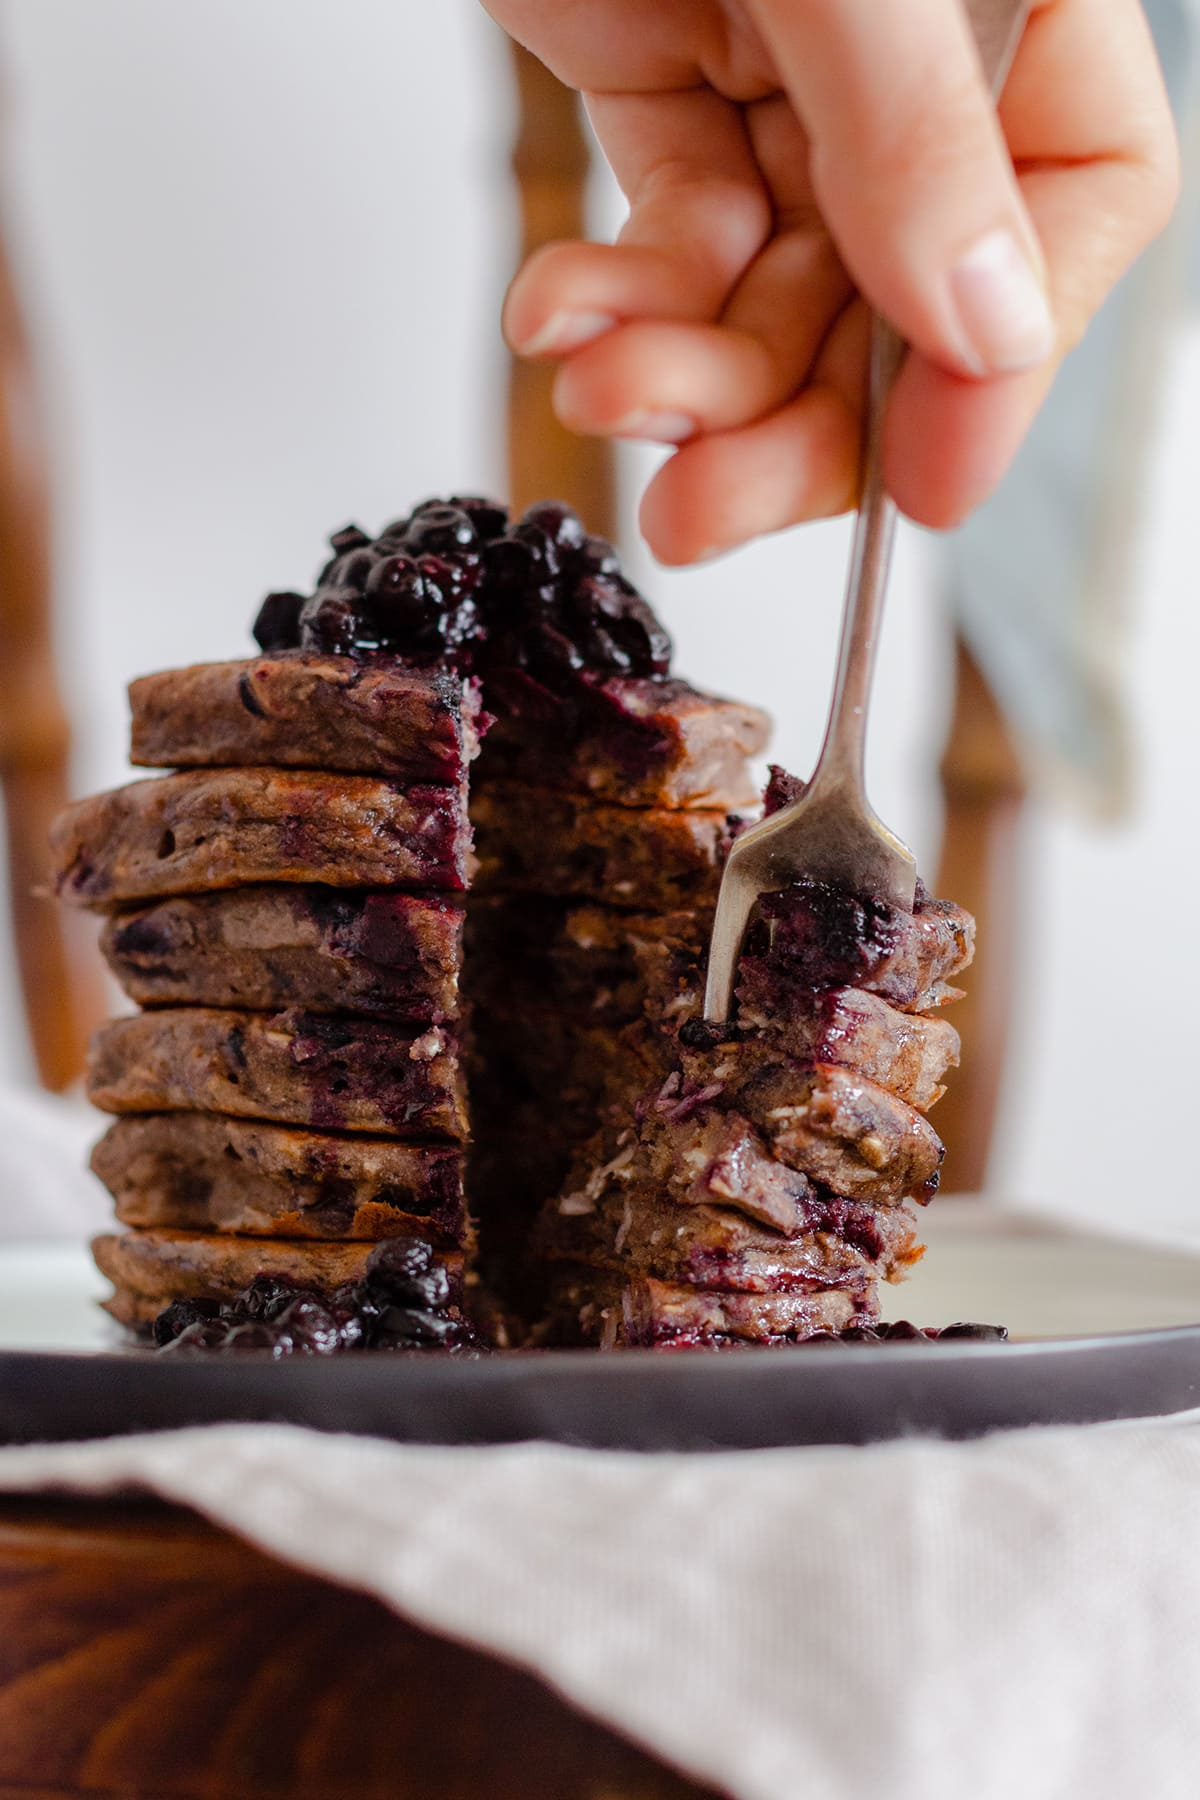 Buckwheat banana blueberry pancakes stacked on a beige plate on a chair. A hand scooping a piece of the layers with a fork.